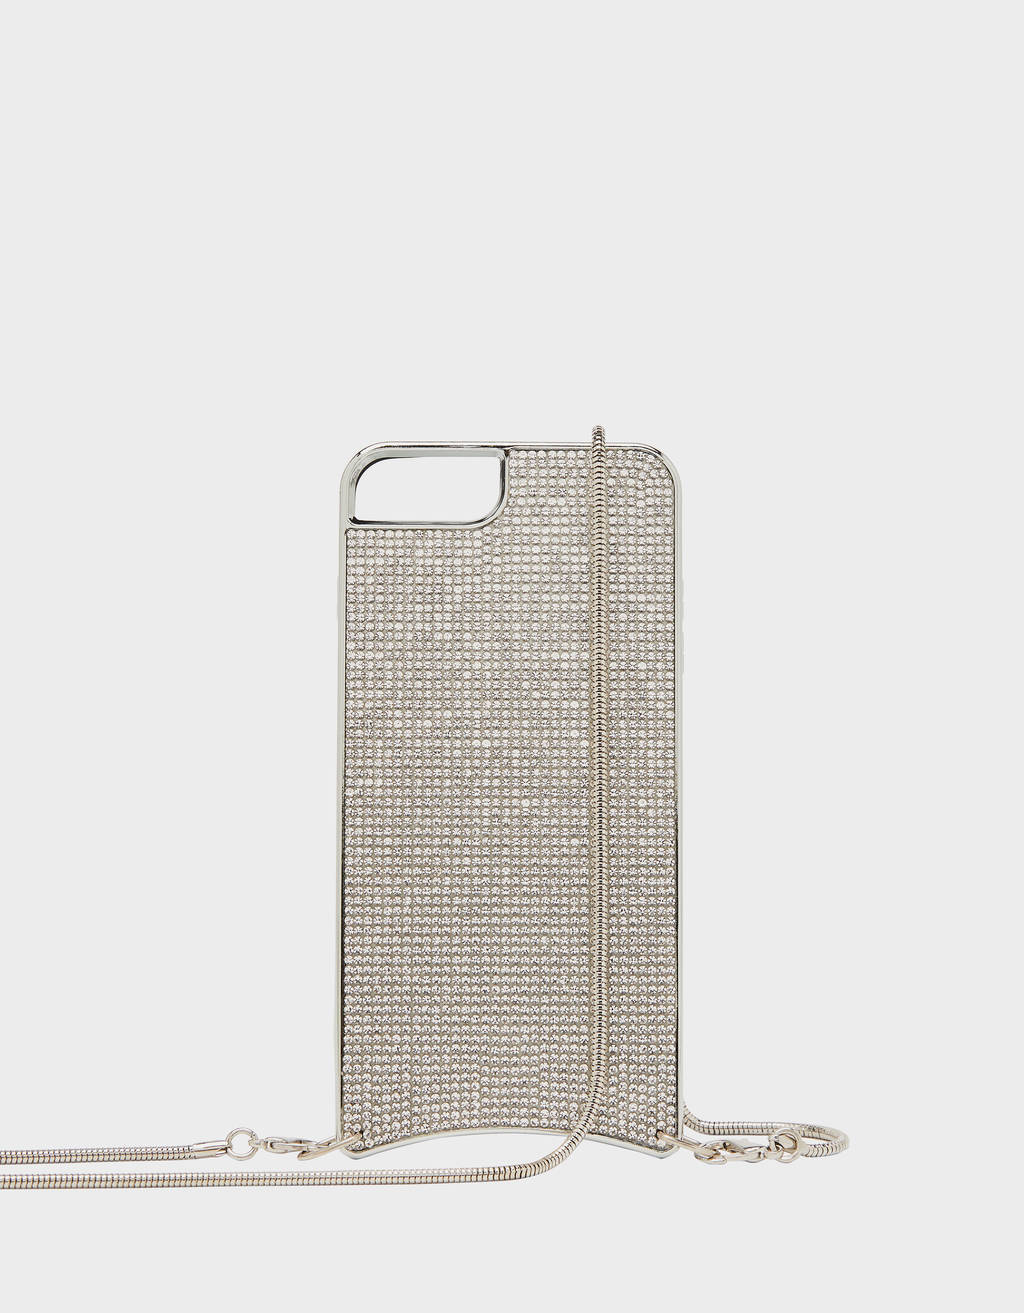 Carcasa con brillos y cadena iPhone 6 Plus / 7 Plus / 8 Plus